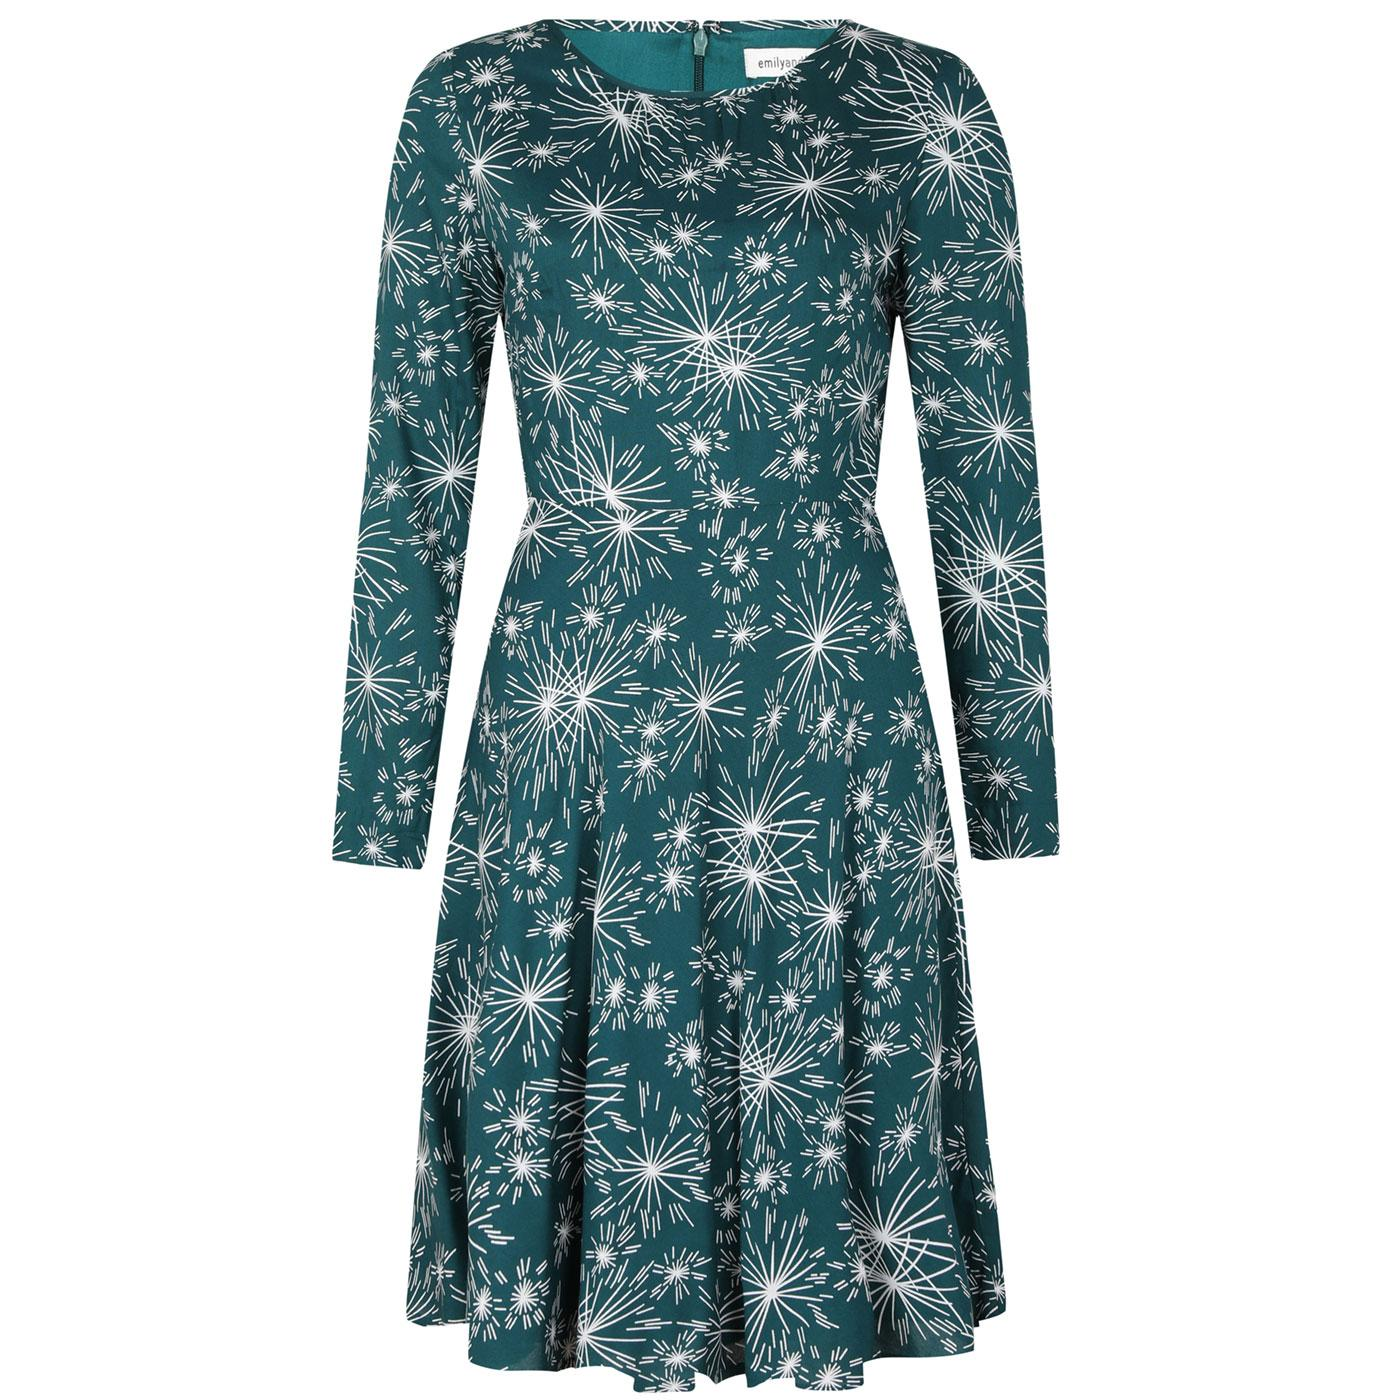 Elinor EMILY AND FIN Vintage Shining Stars Dress